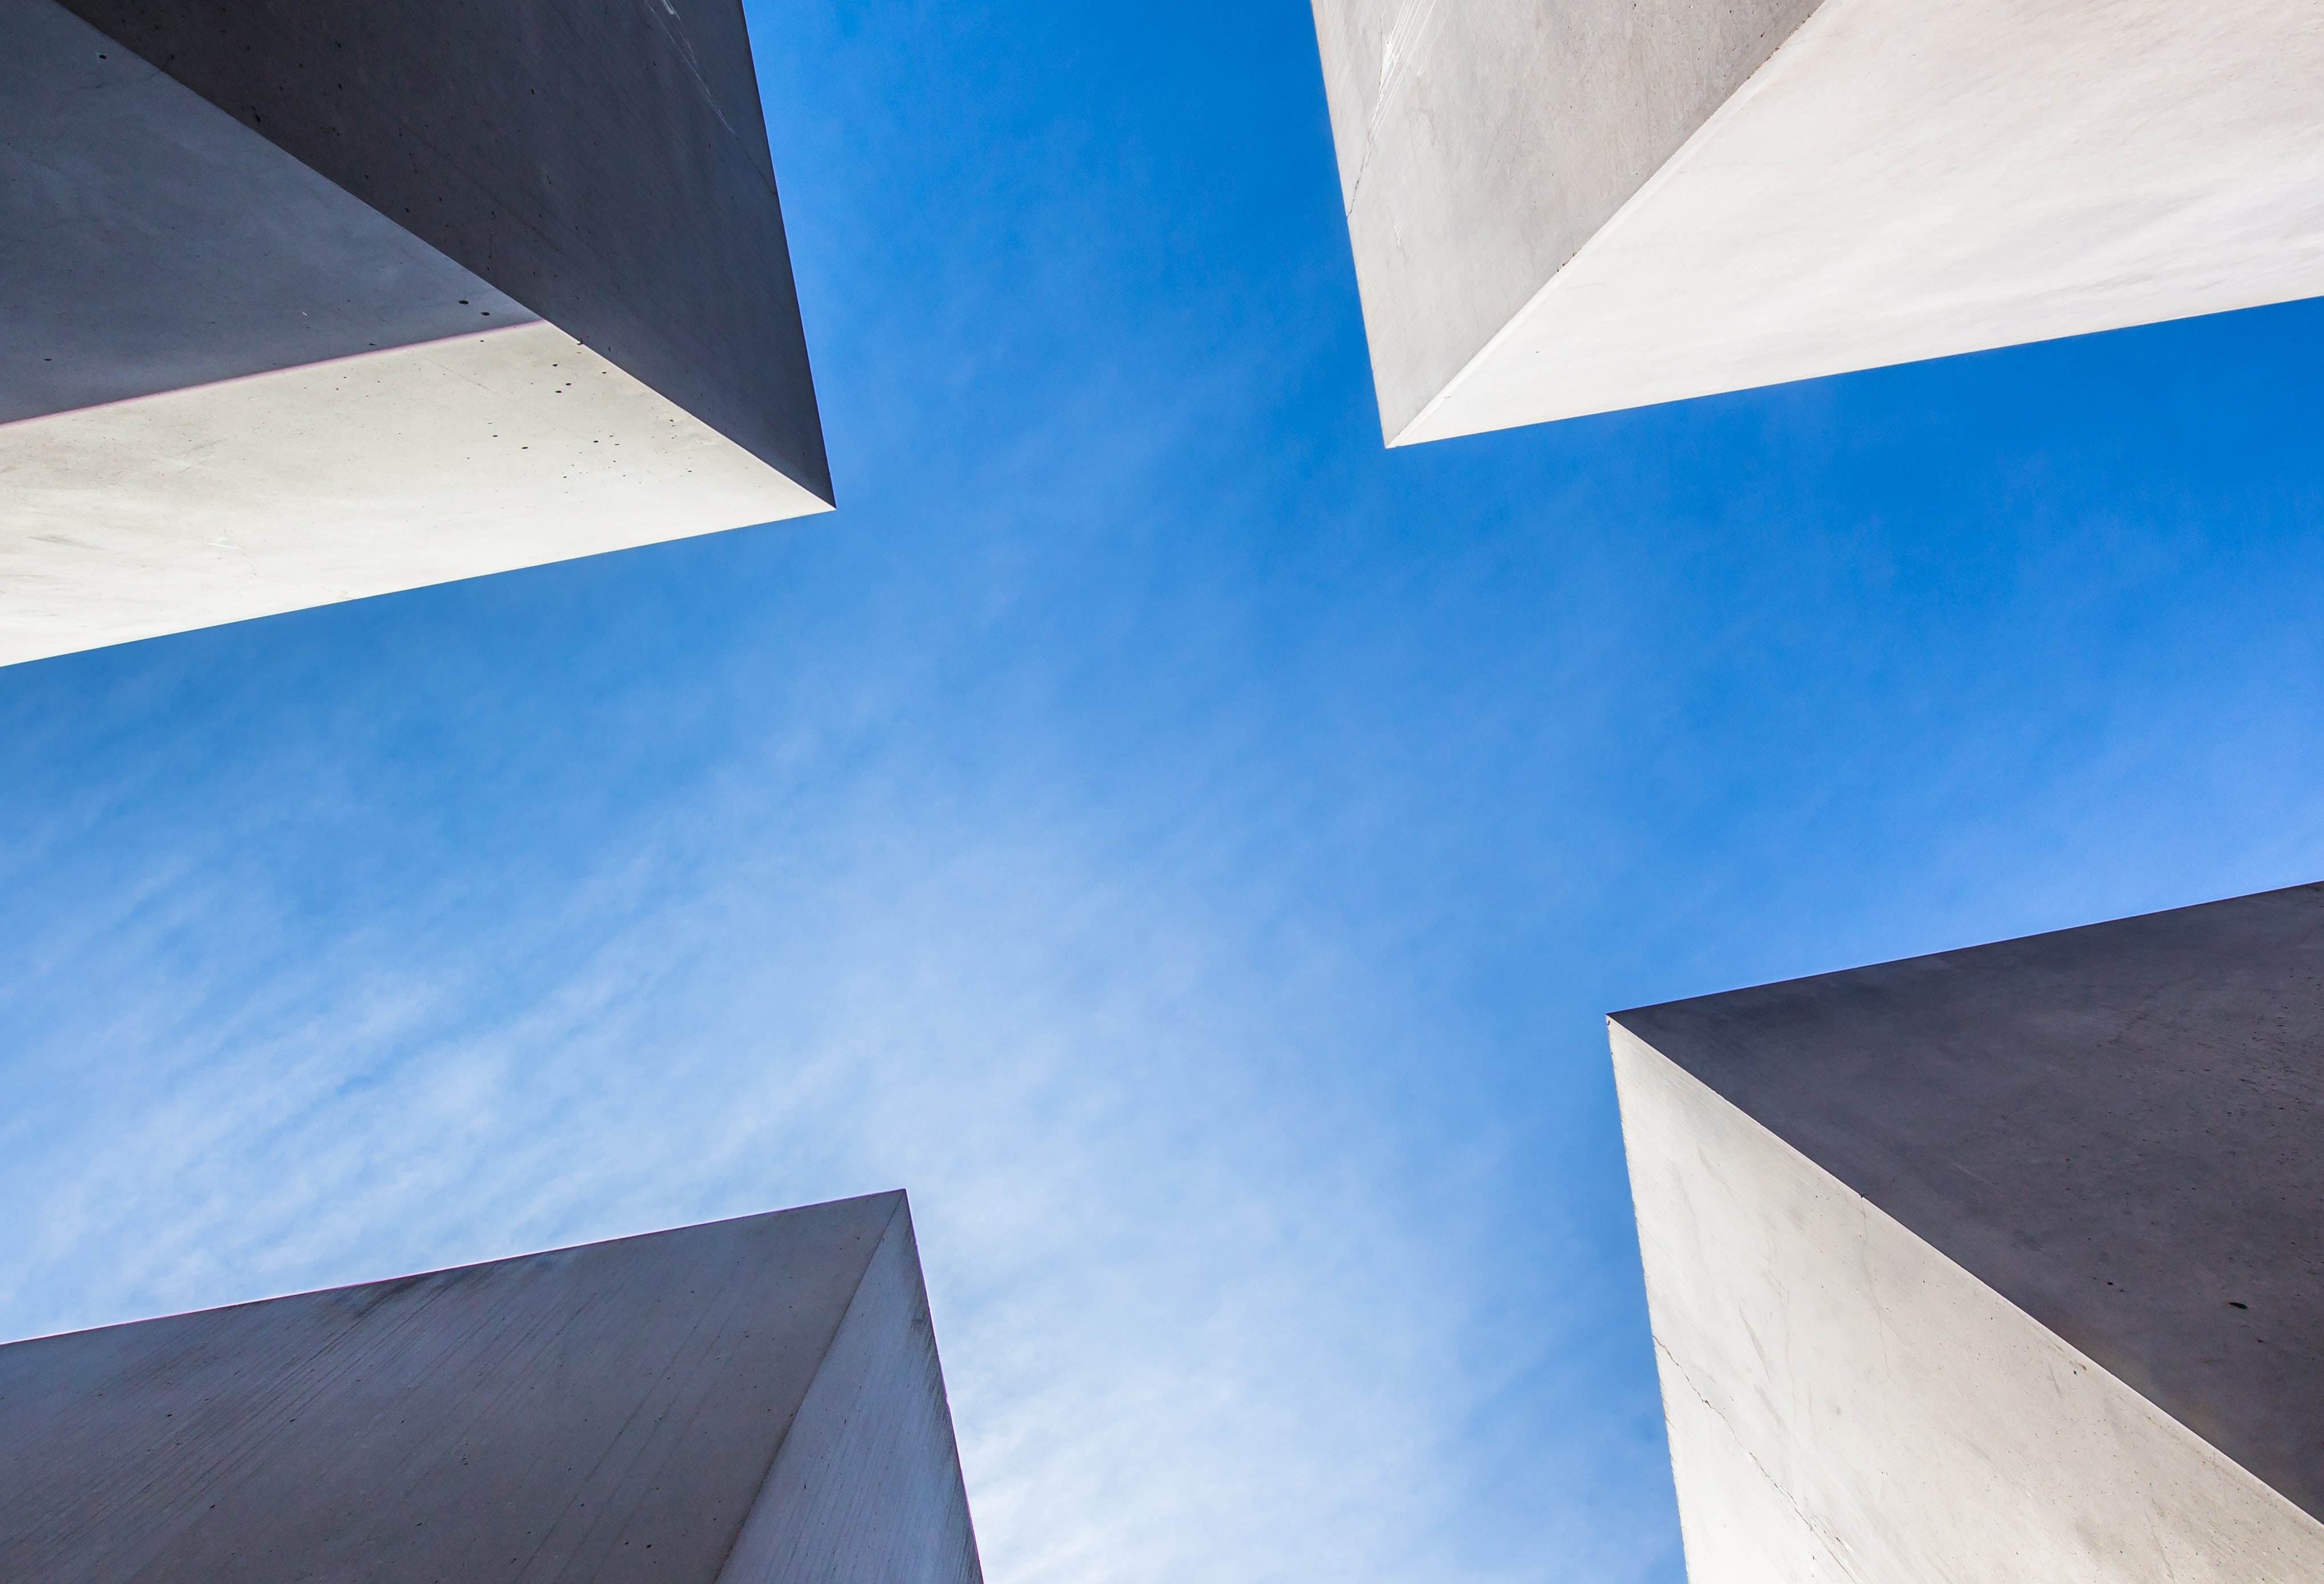 low angle photography of concrete buildings under blue sky